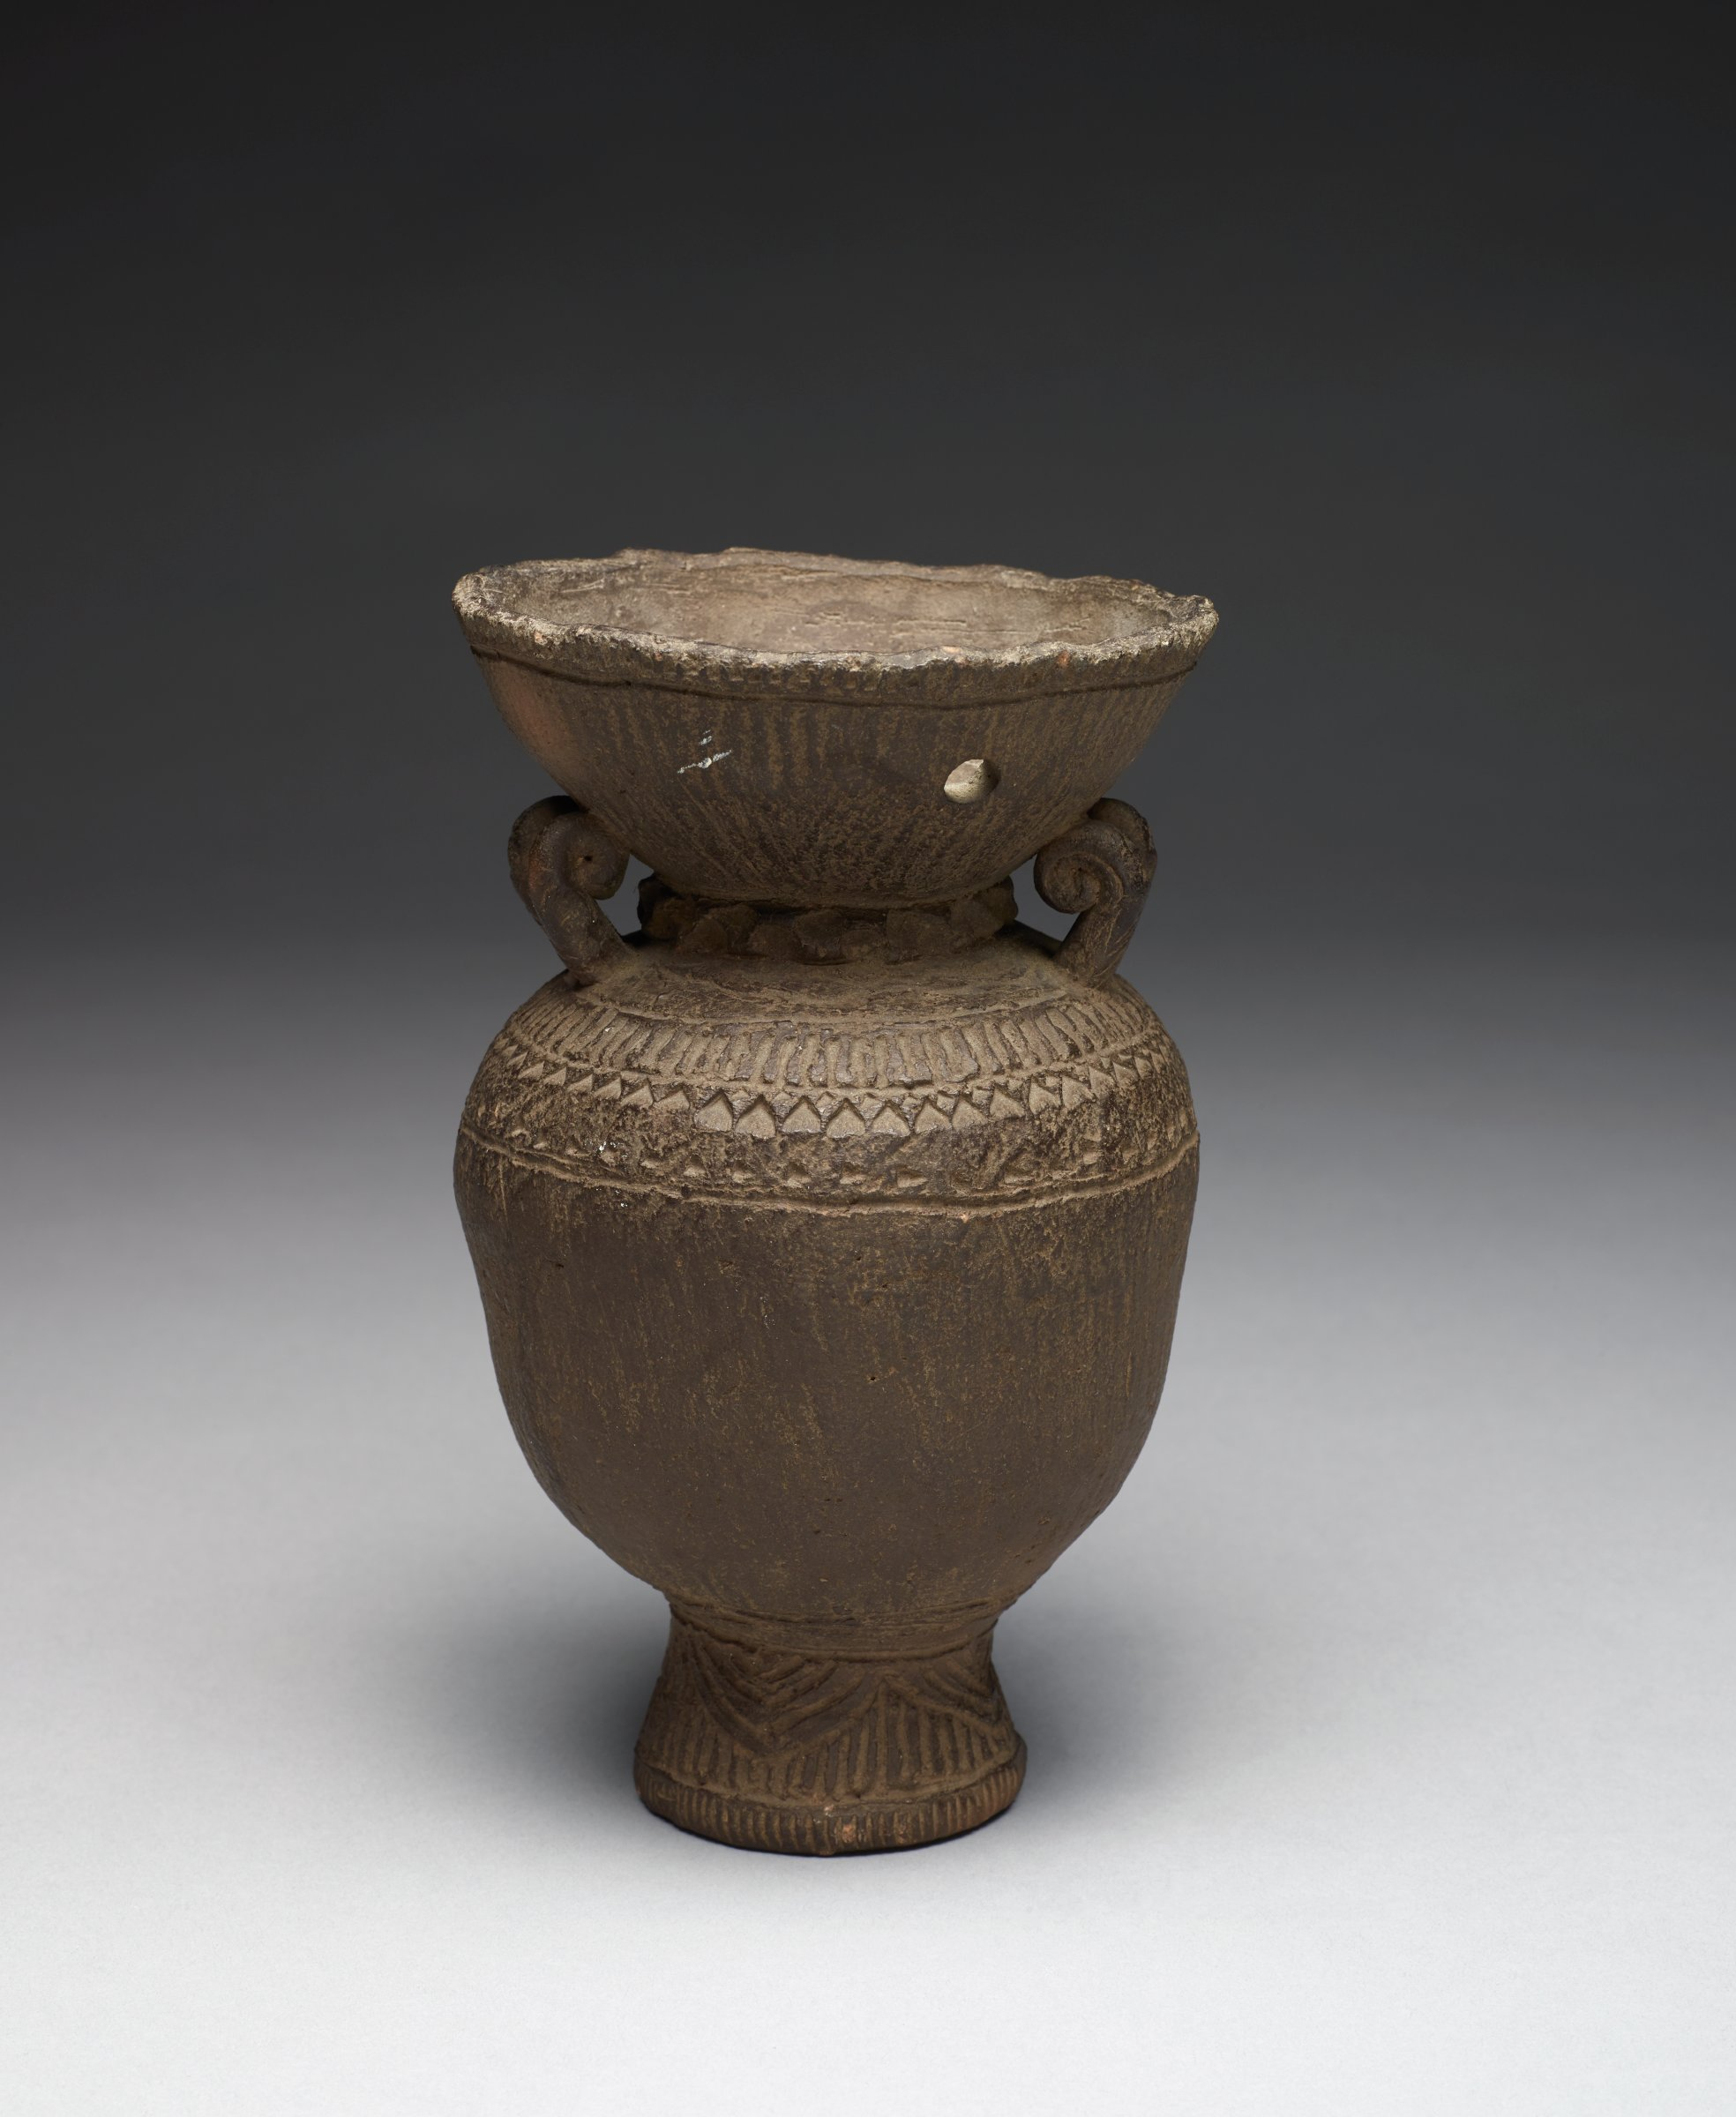 Vase with Carved Mouth, Neck, Shoulder and Foot Featuring Lotus Motifs